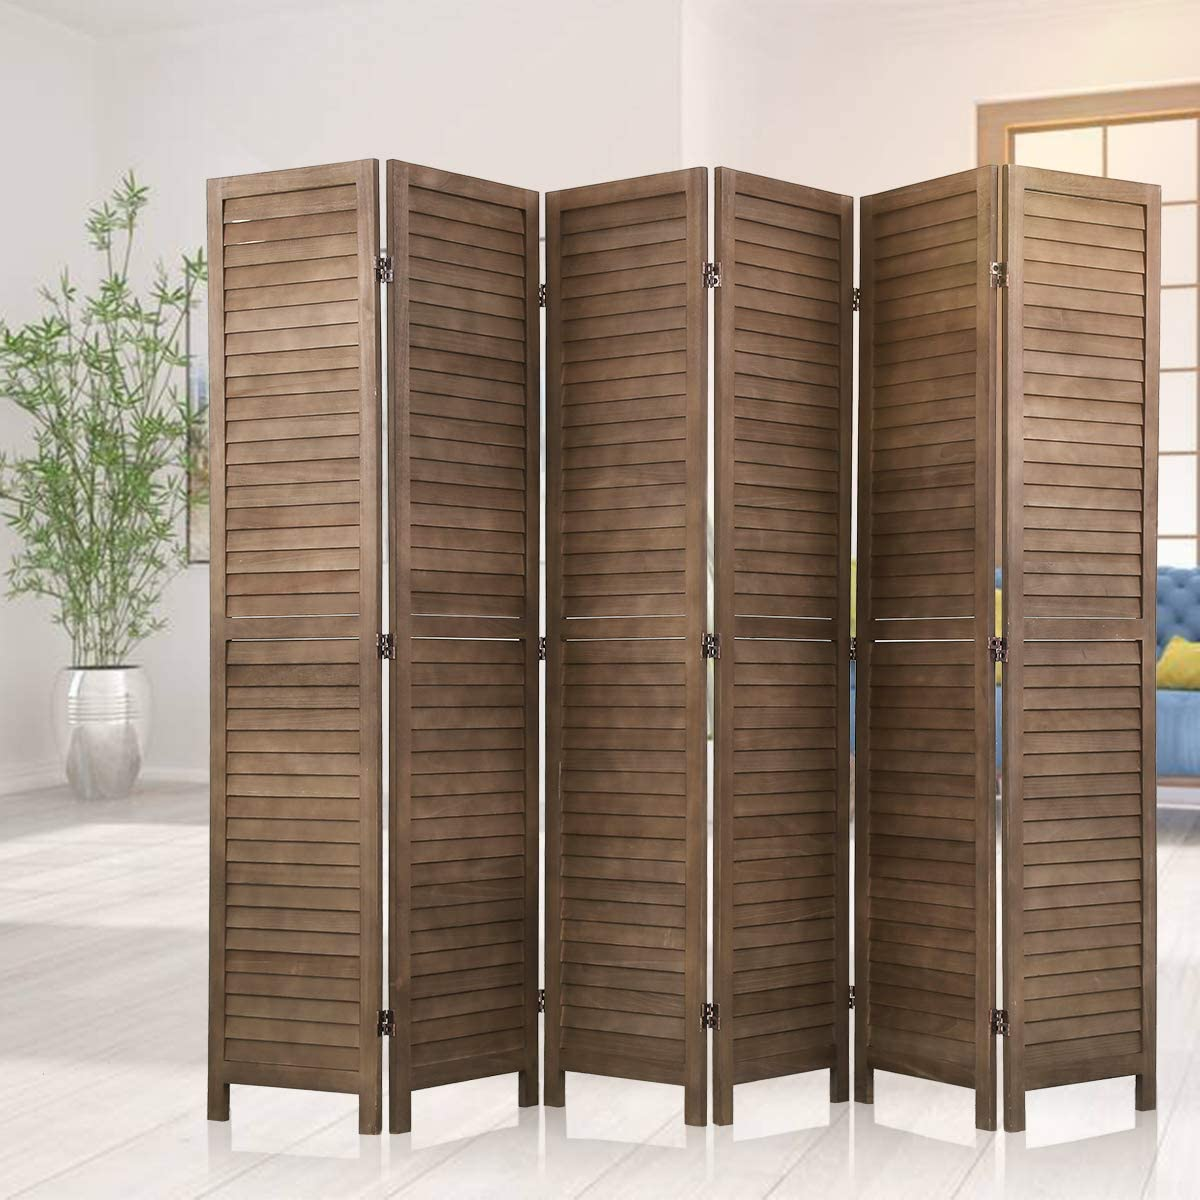 6 Panels 5.75 ft.Tall-15.75 Wide Room Divider Screen Partitions,Freestanding Folding Instant Mesh Blackout Blinds Indoor Decorative Separator Wall Divider